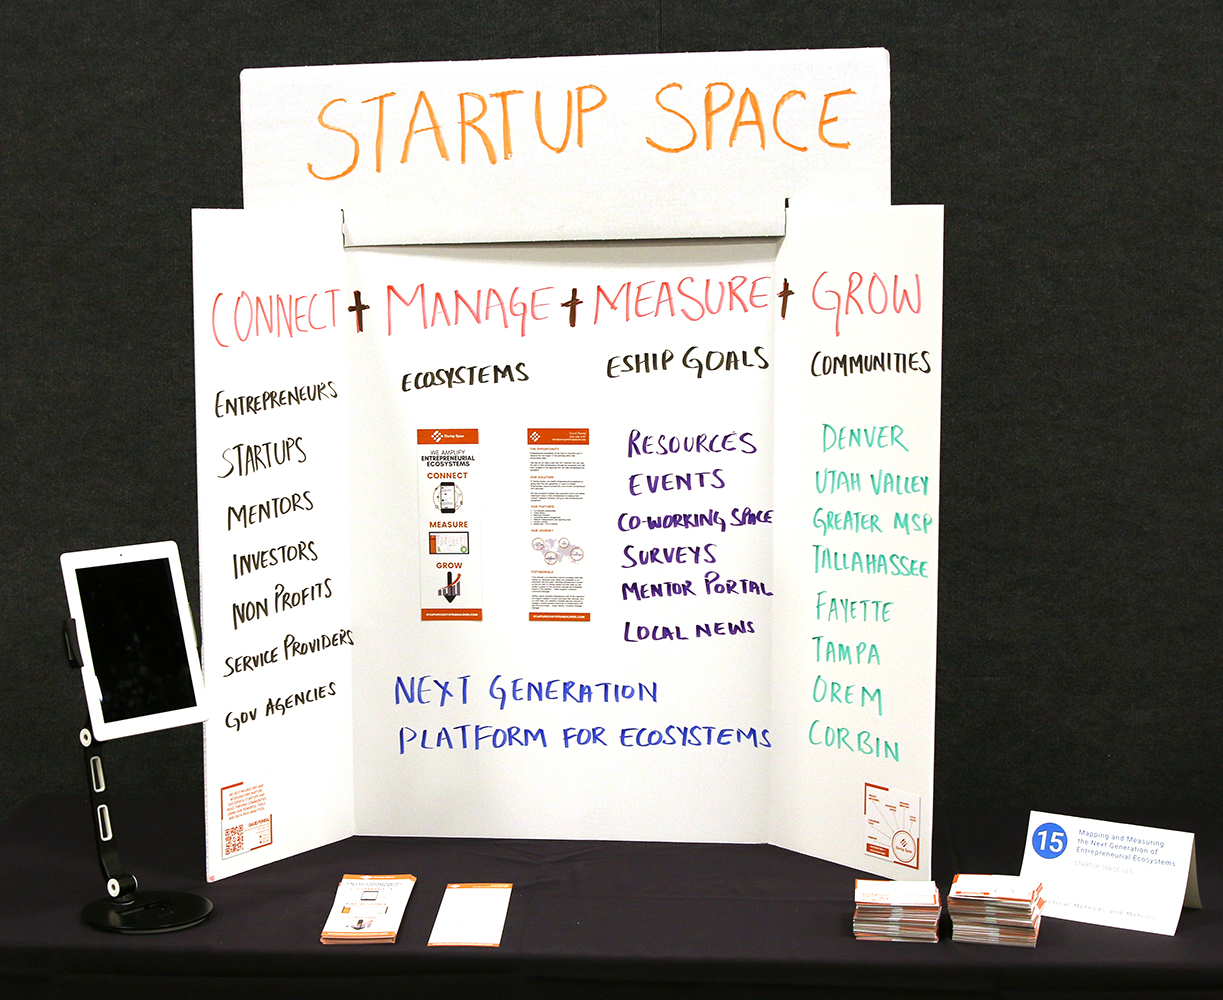 Mapping and Measuring Next Gen, Science Fair | ESHIP Summit 2019